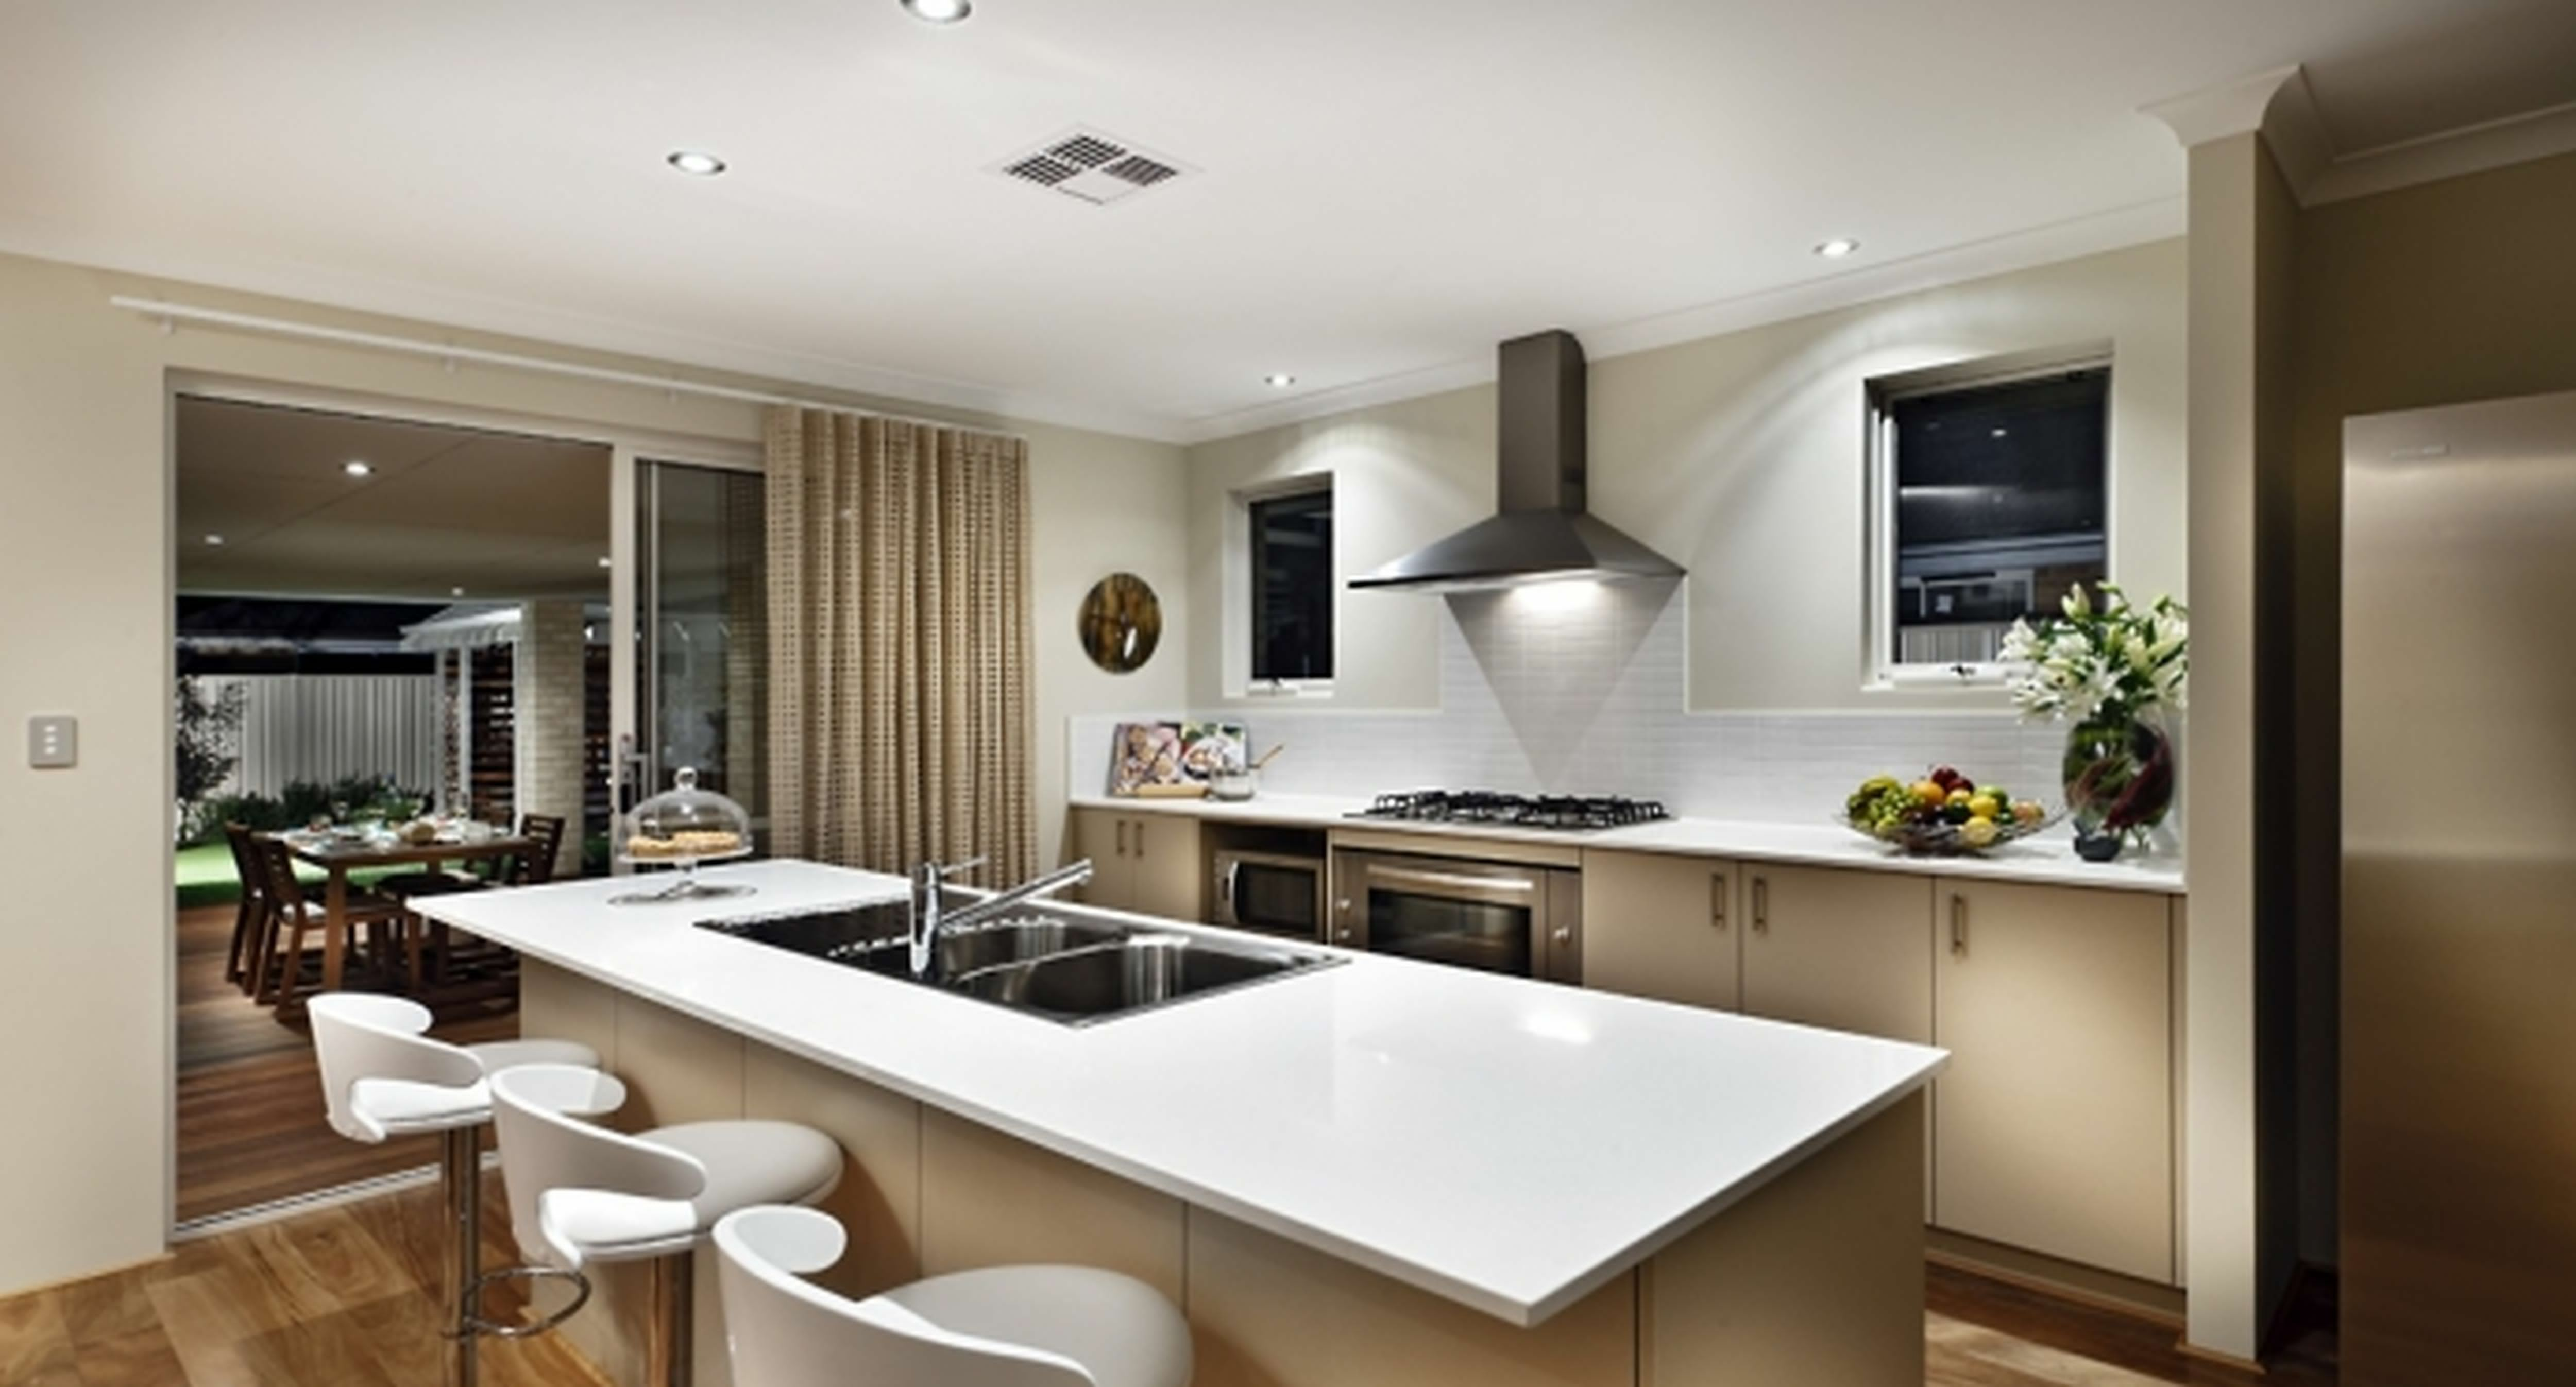 Kitchen Appealing Design App Free Commercial Layout With ...